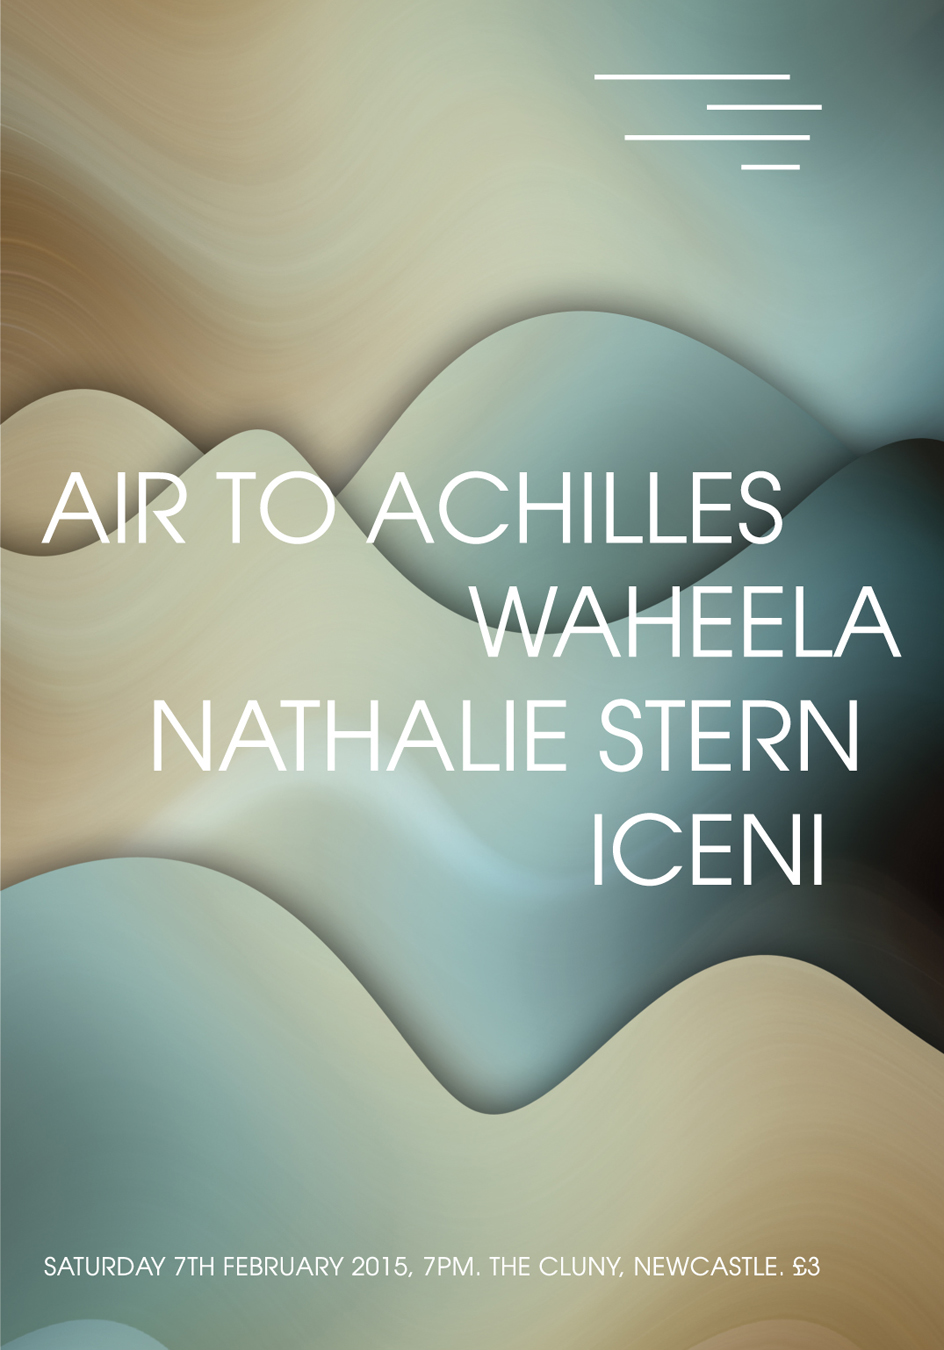 Poster design newcastle - Poster Design For Newcastle Band Air To Achilles